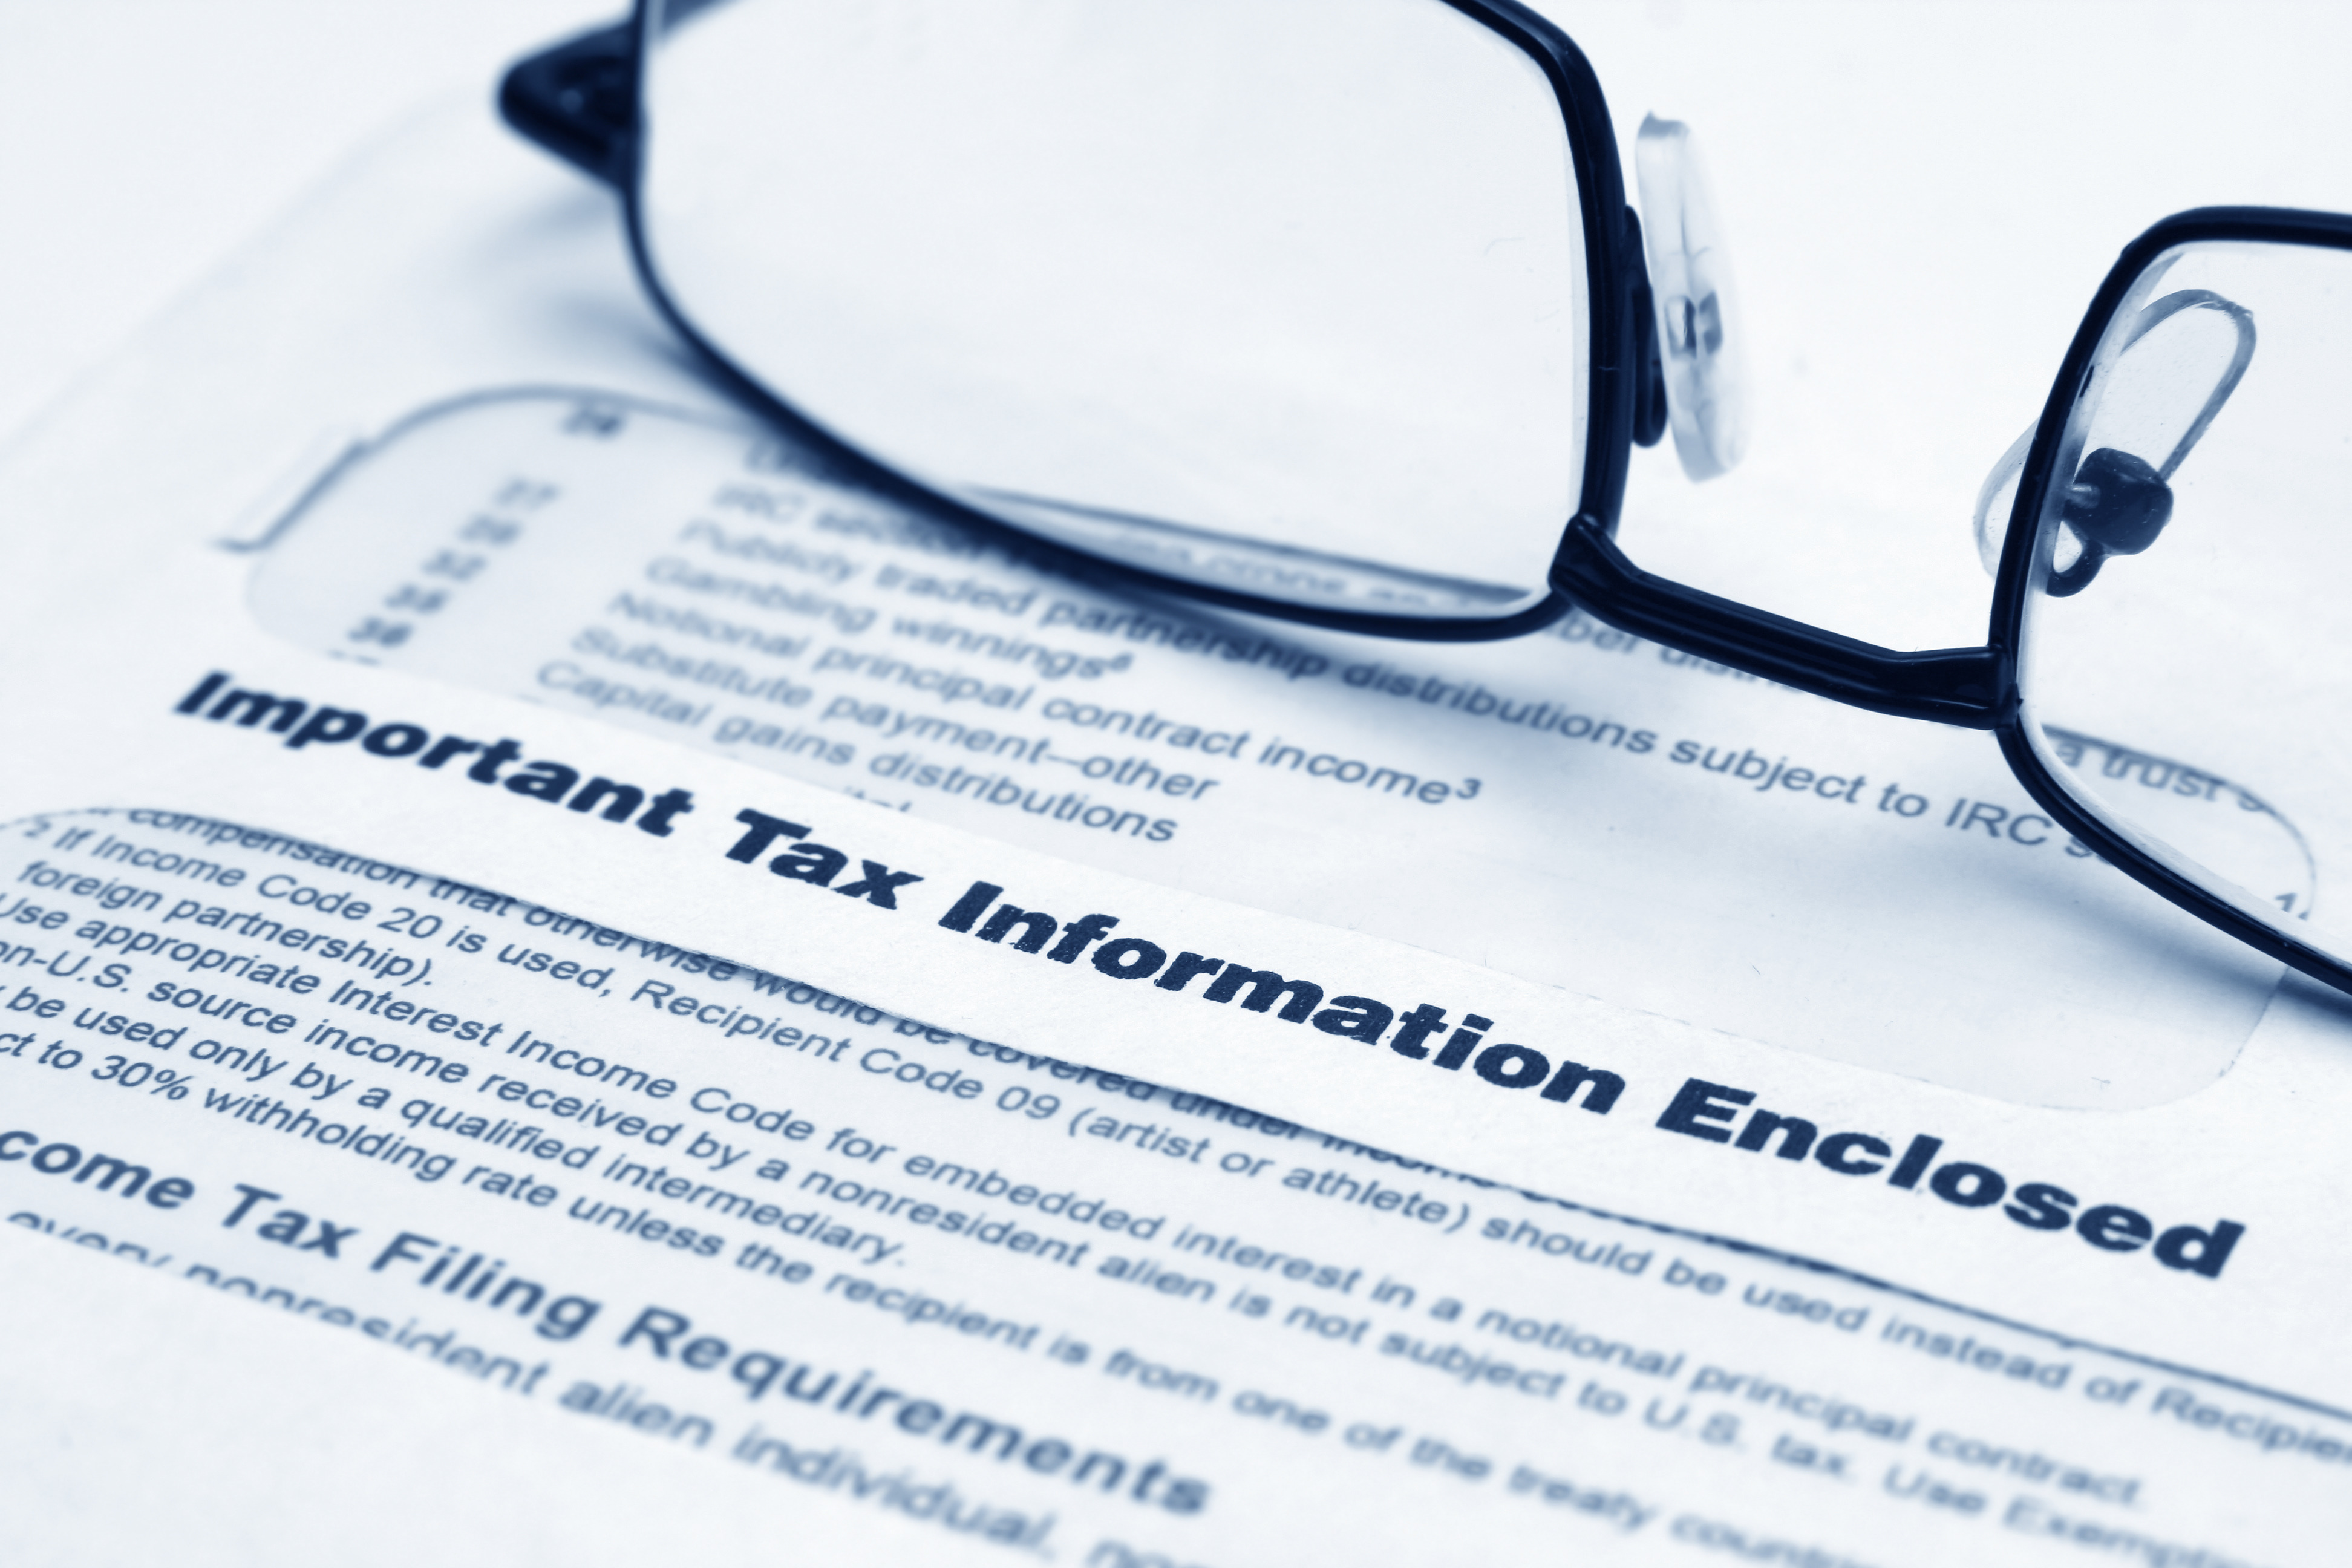 What's New on the Form 1040 (2013)